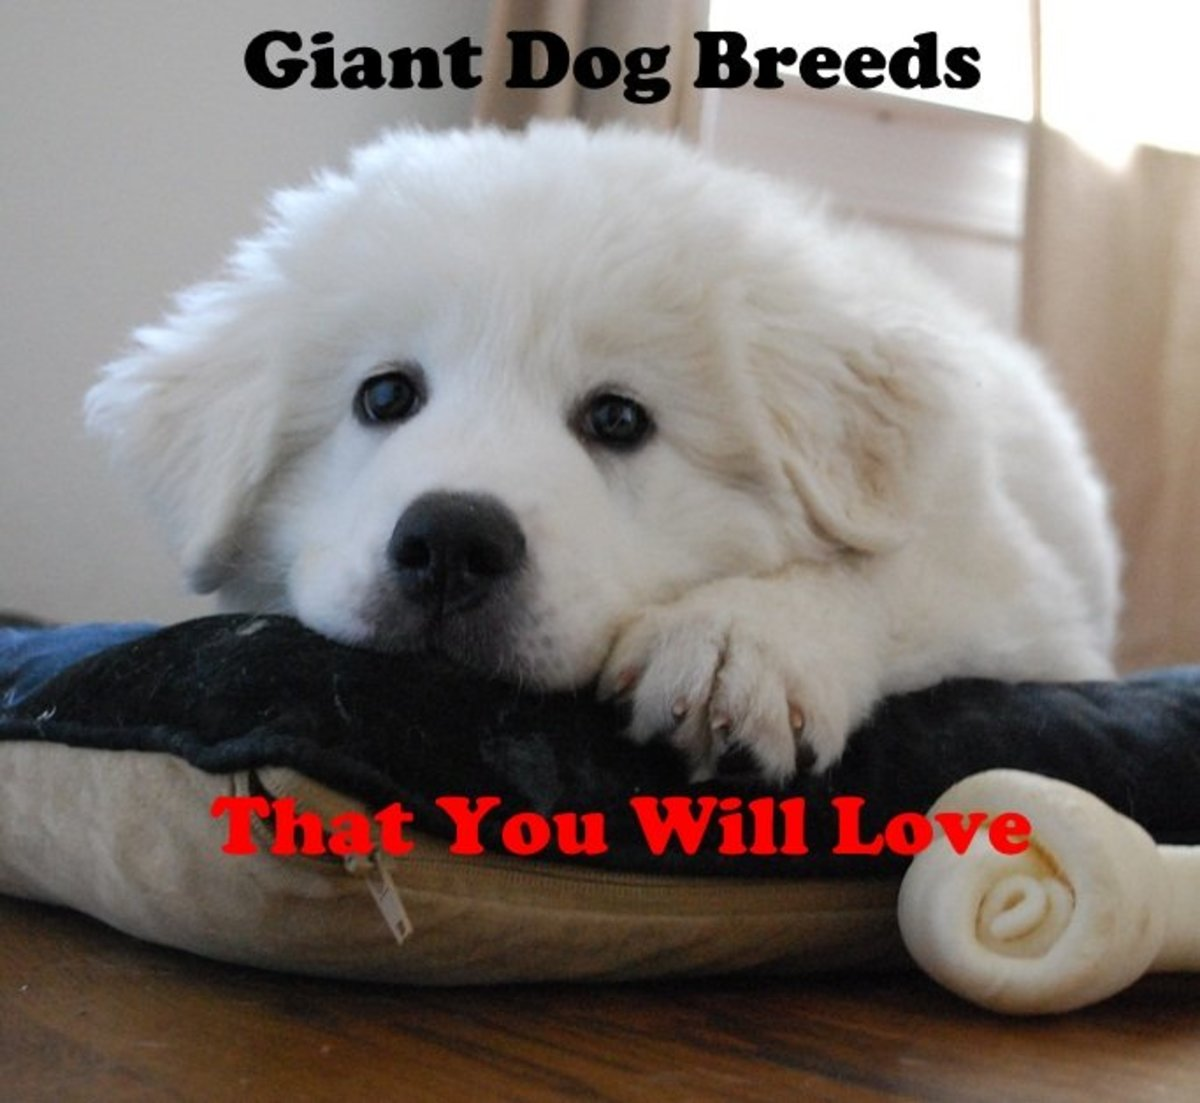 Giant dog breeds you will love.